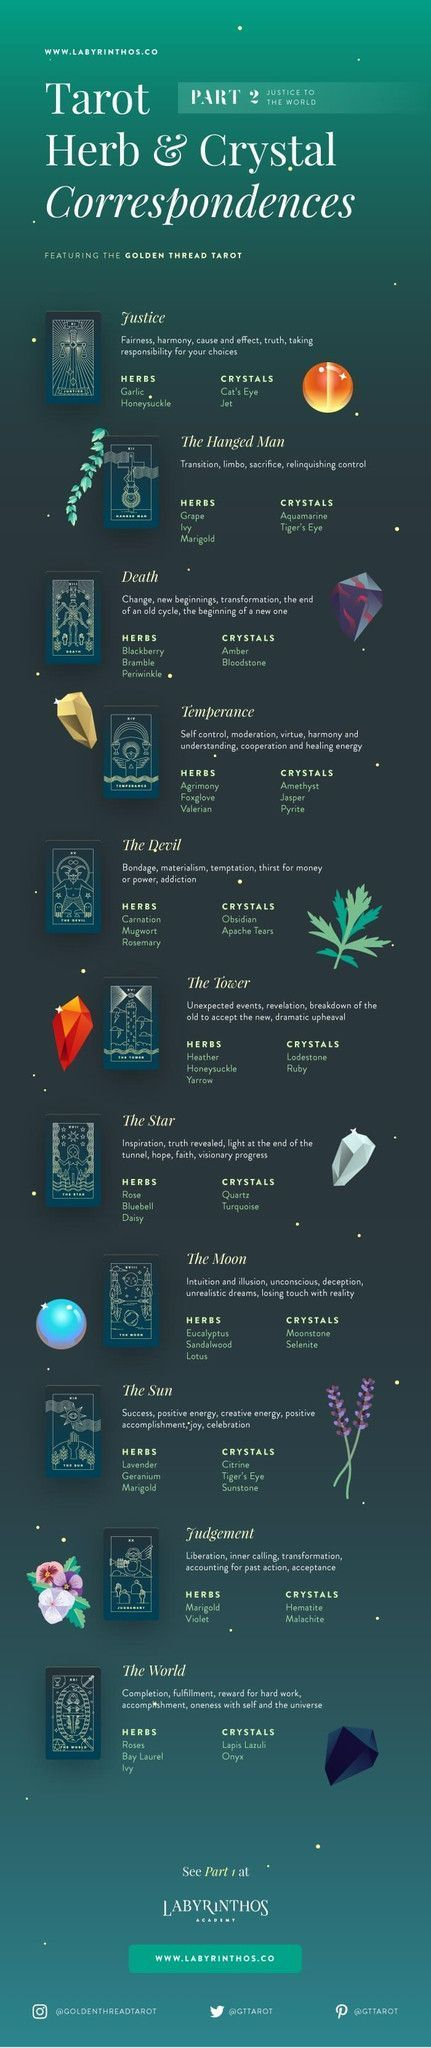 Full Infographic - Crystals, Tarot and Herbal Correspondences Chart - Part 2: From Justice to the World